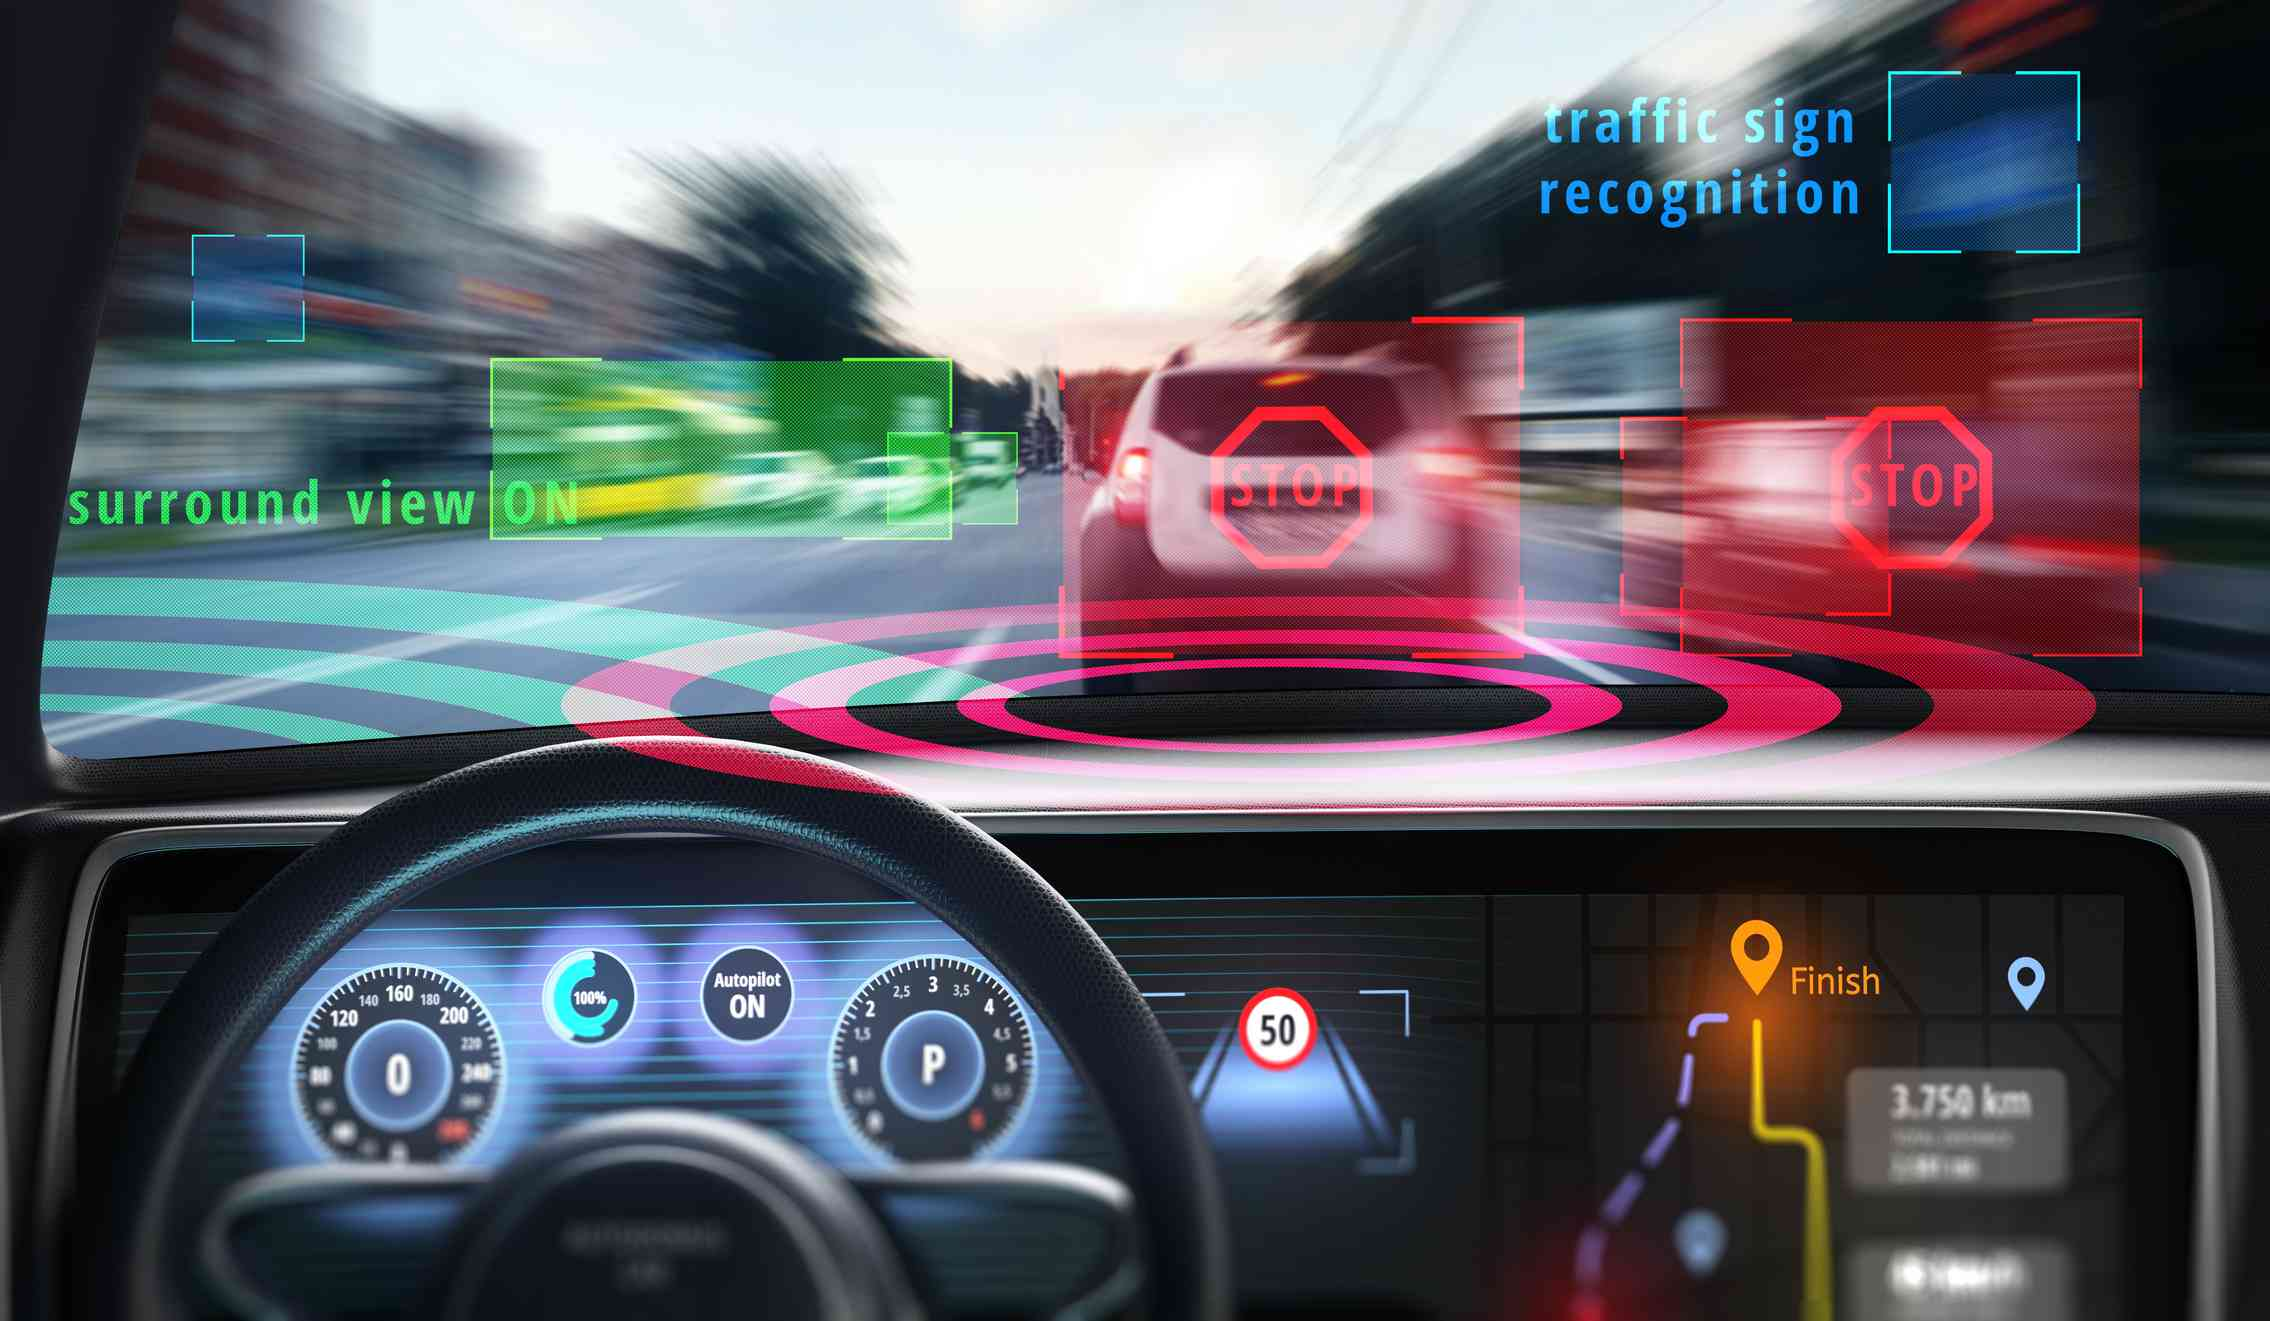 The view from the drivers seat of a car with digital information displayed on the windshield.